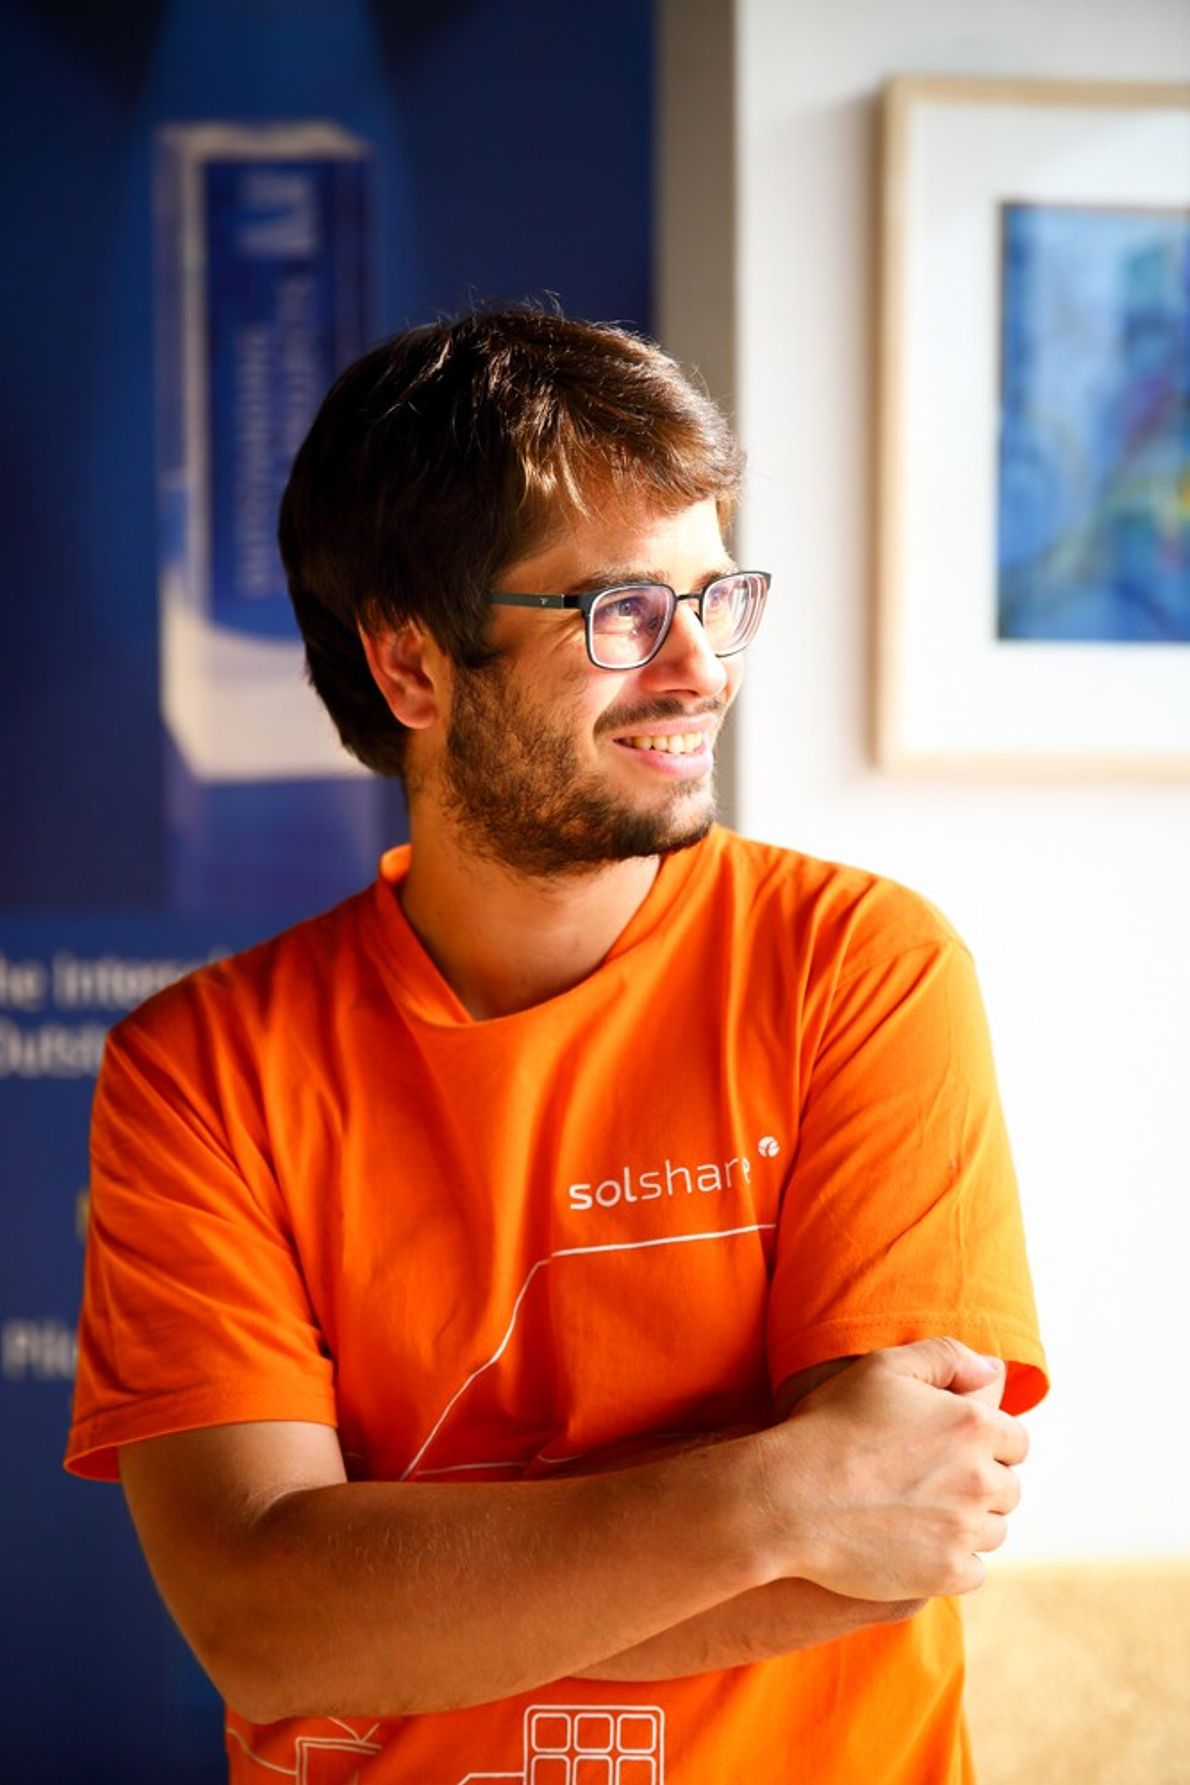 Dr. Sebastian Groh, CEO and Co-Founder of SOLshare, who created SOLbazaar.